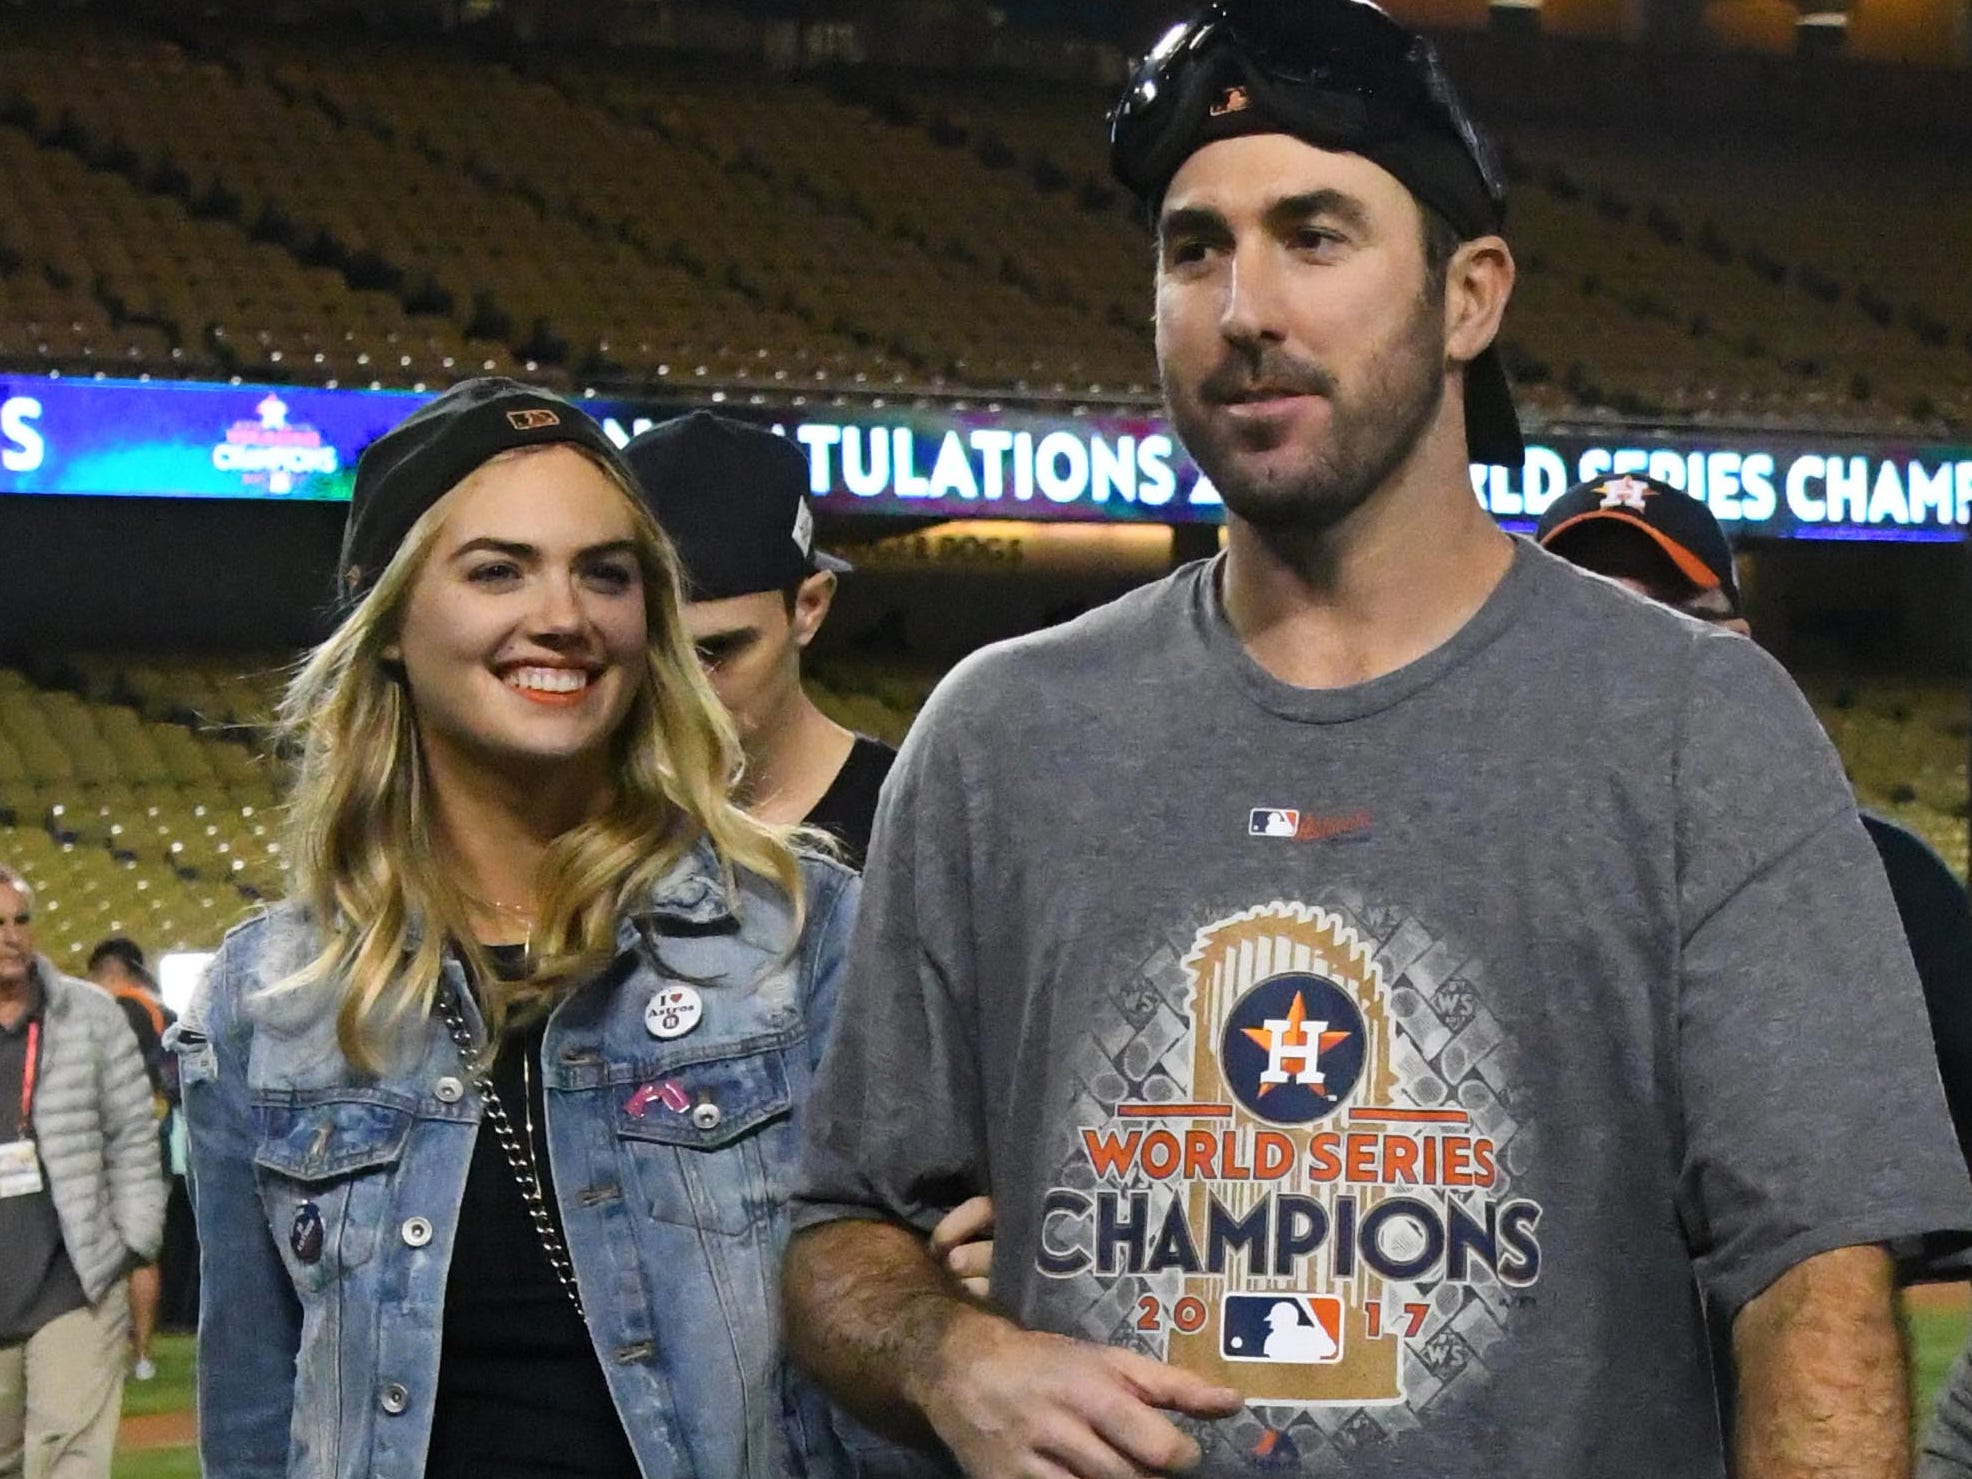 Kate Upton has much different reaction to Justin Verlander not winning Cy Young